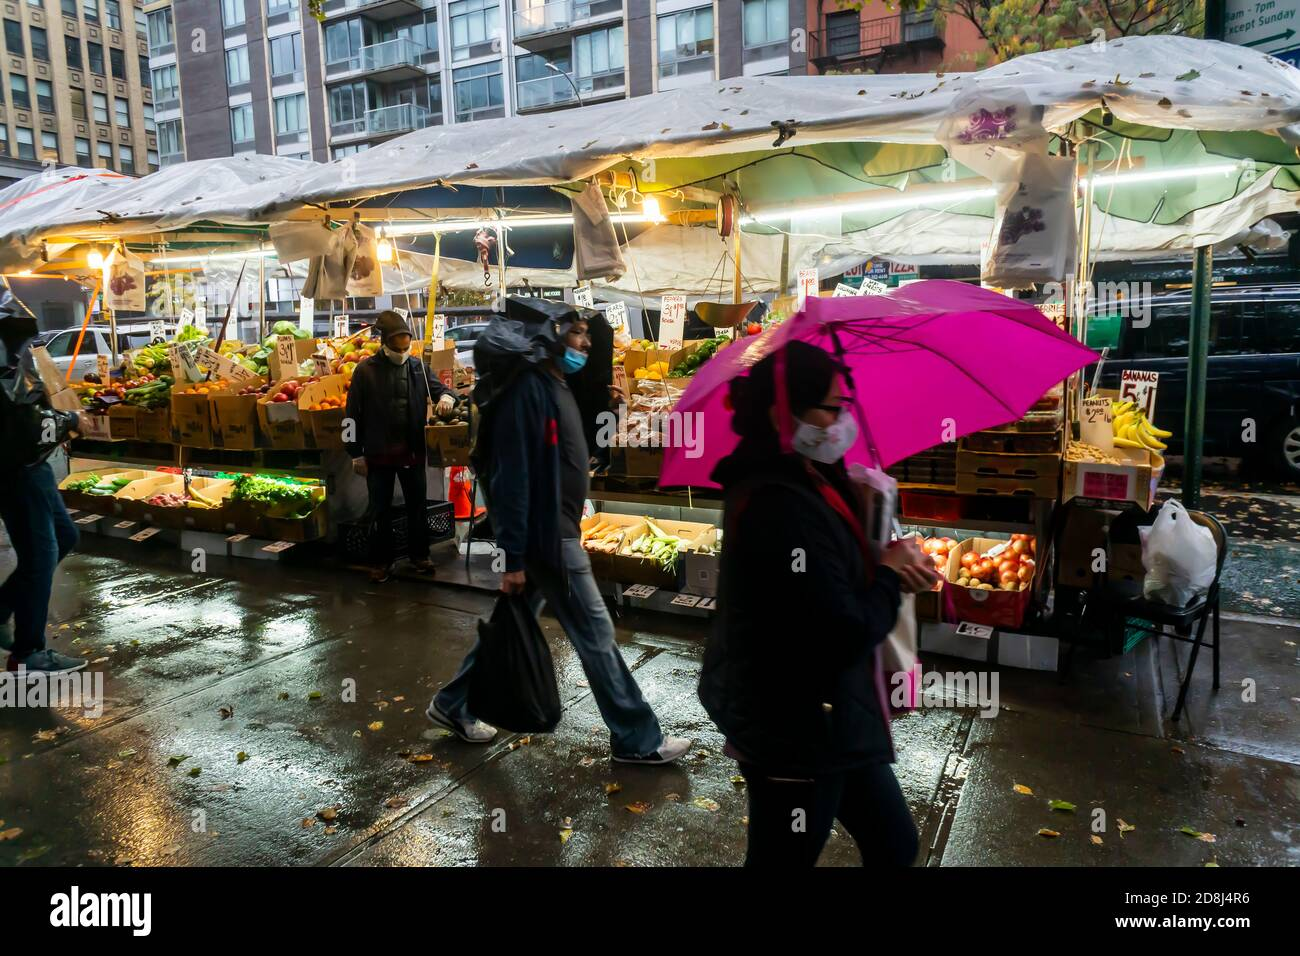 Customers at a fruit stand in the Chelsea neighborhood of New York suffering the remnants of Hurricane Zeta on Thursday, October 29, 2020. Thursday saw steady rain all day continuing into Friday with a drop in temperatures predicted for the weekend. Yikes! (© Richard B. Levine) Stock Photo